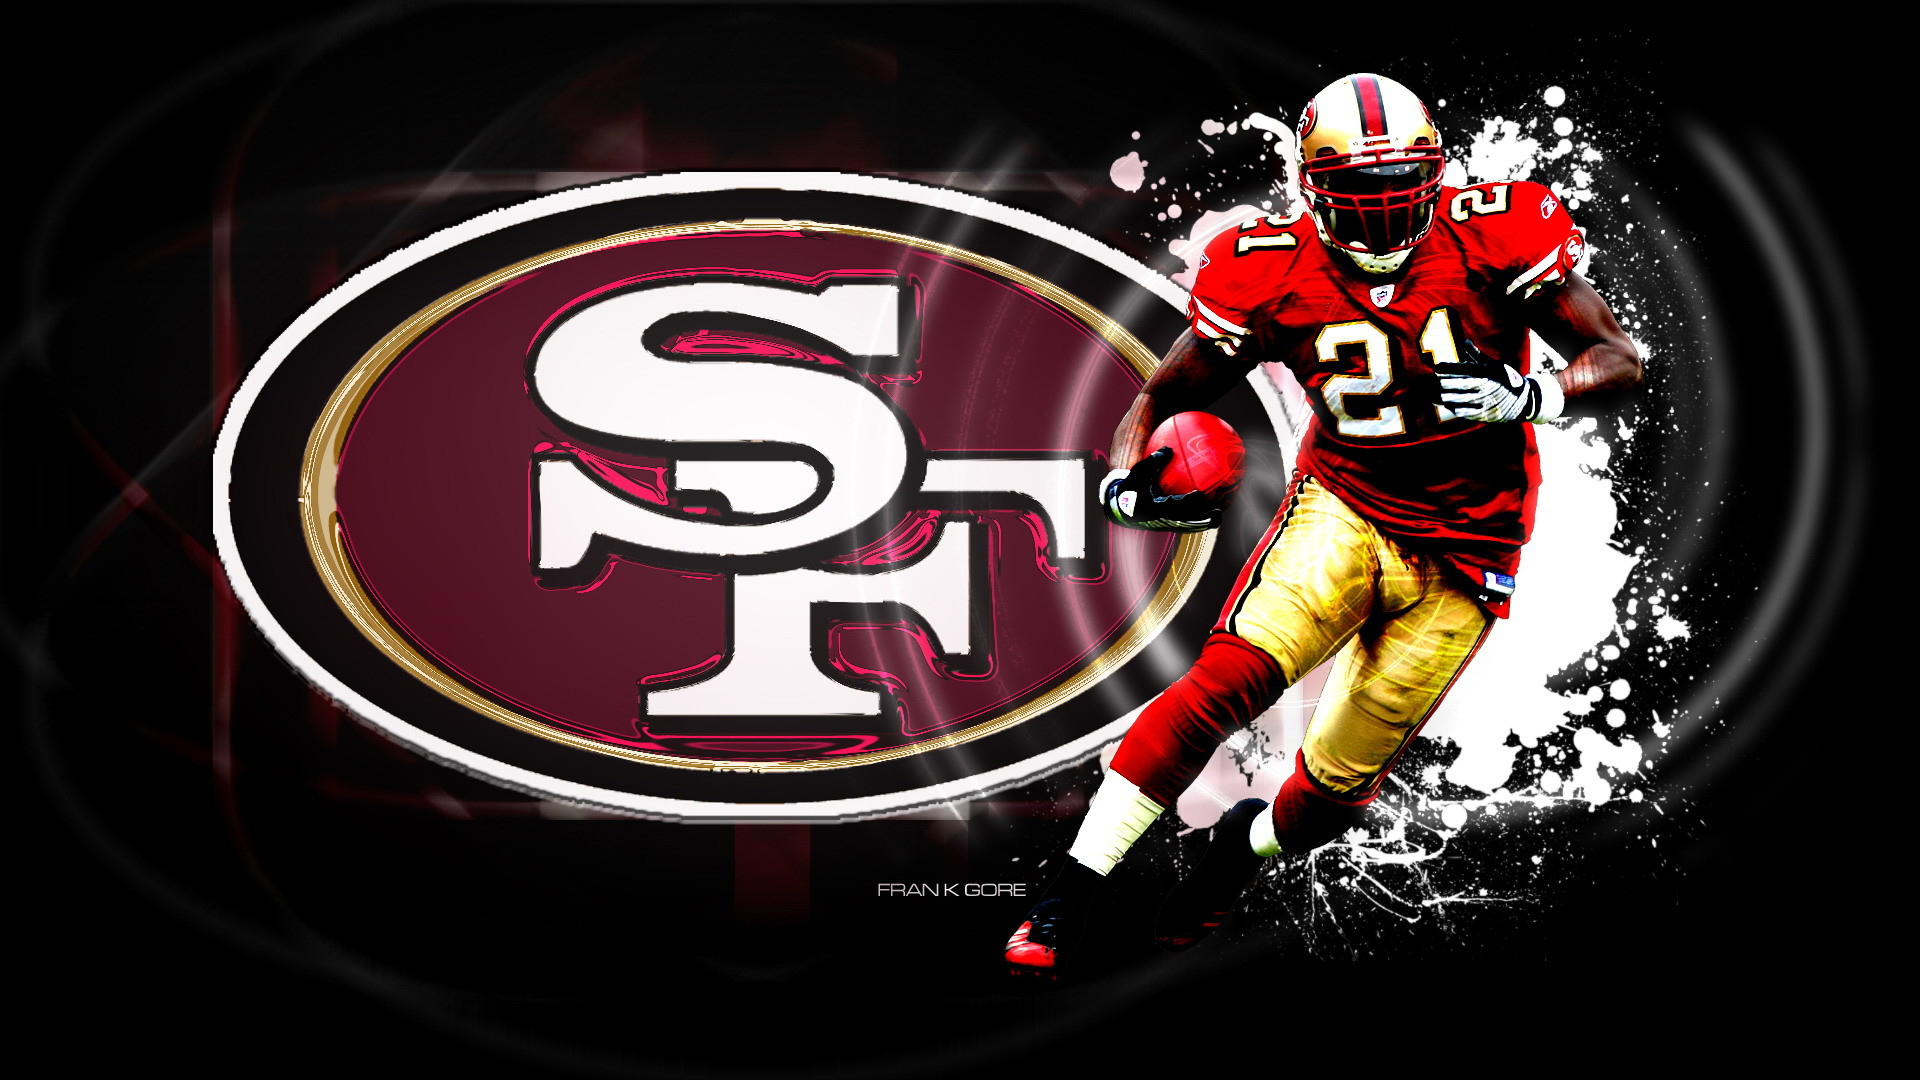 1920x1080 Free 49ers Wallpapers Your Phone - Wallpaper Cave | All Wallpapers |  Pinterest | Wallpaper